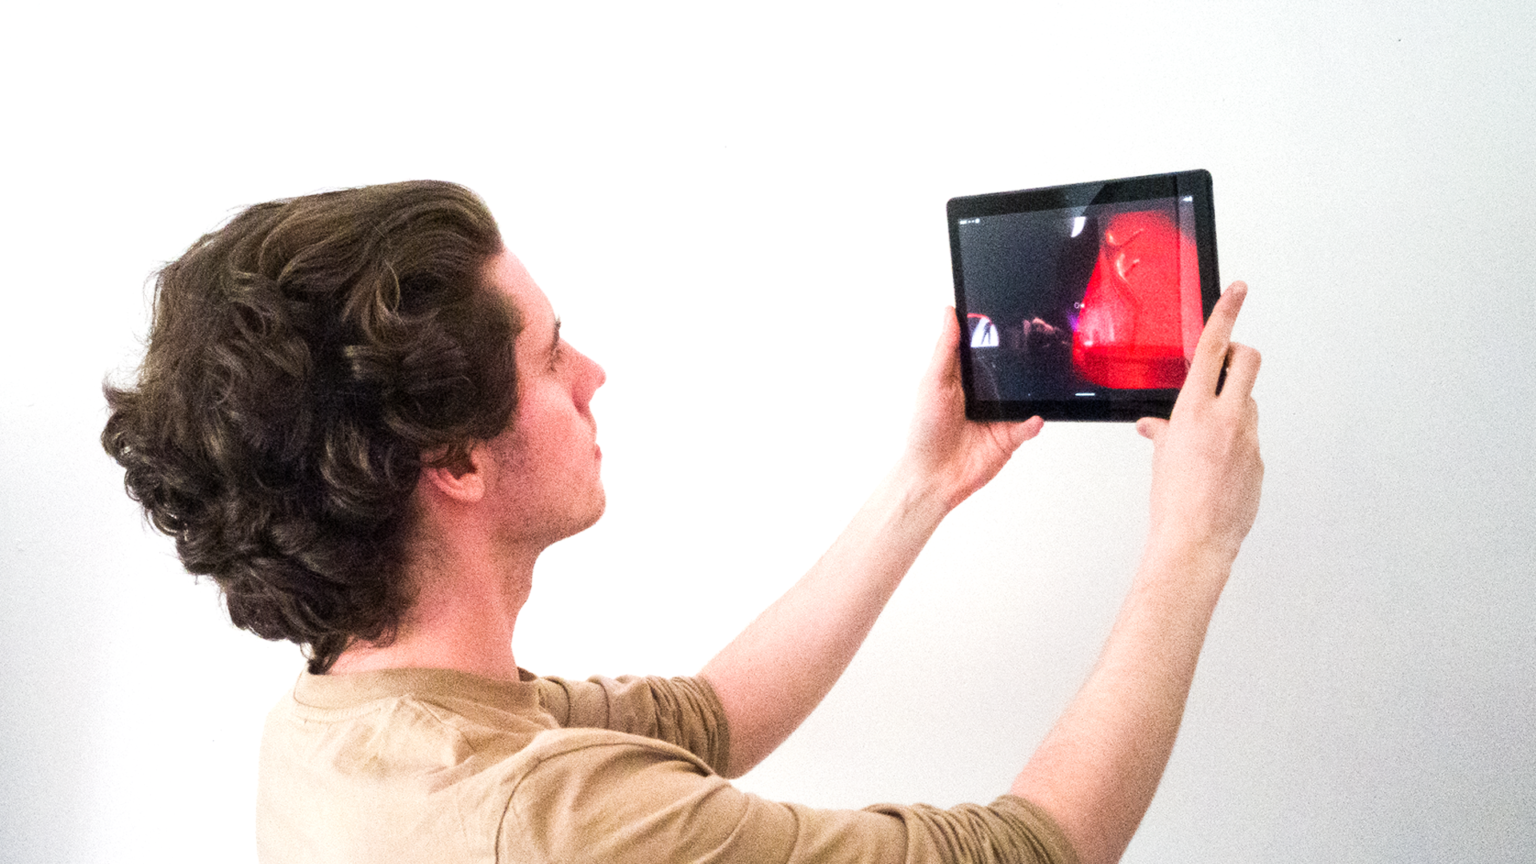 'I May Lack Identity, But I Have Wonderful Teeth' running on an Android Tablet